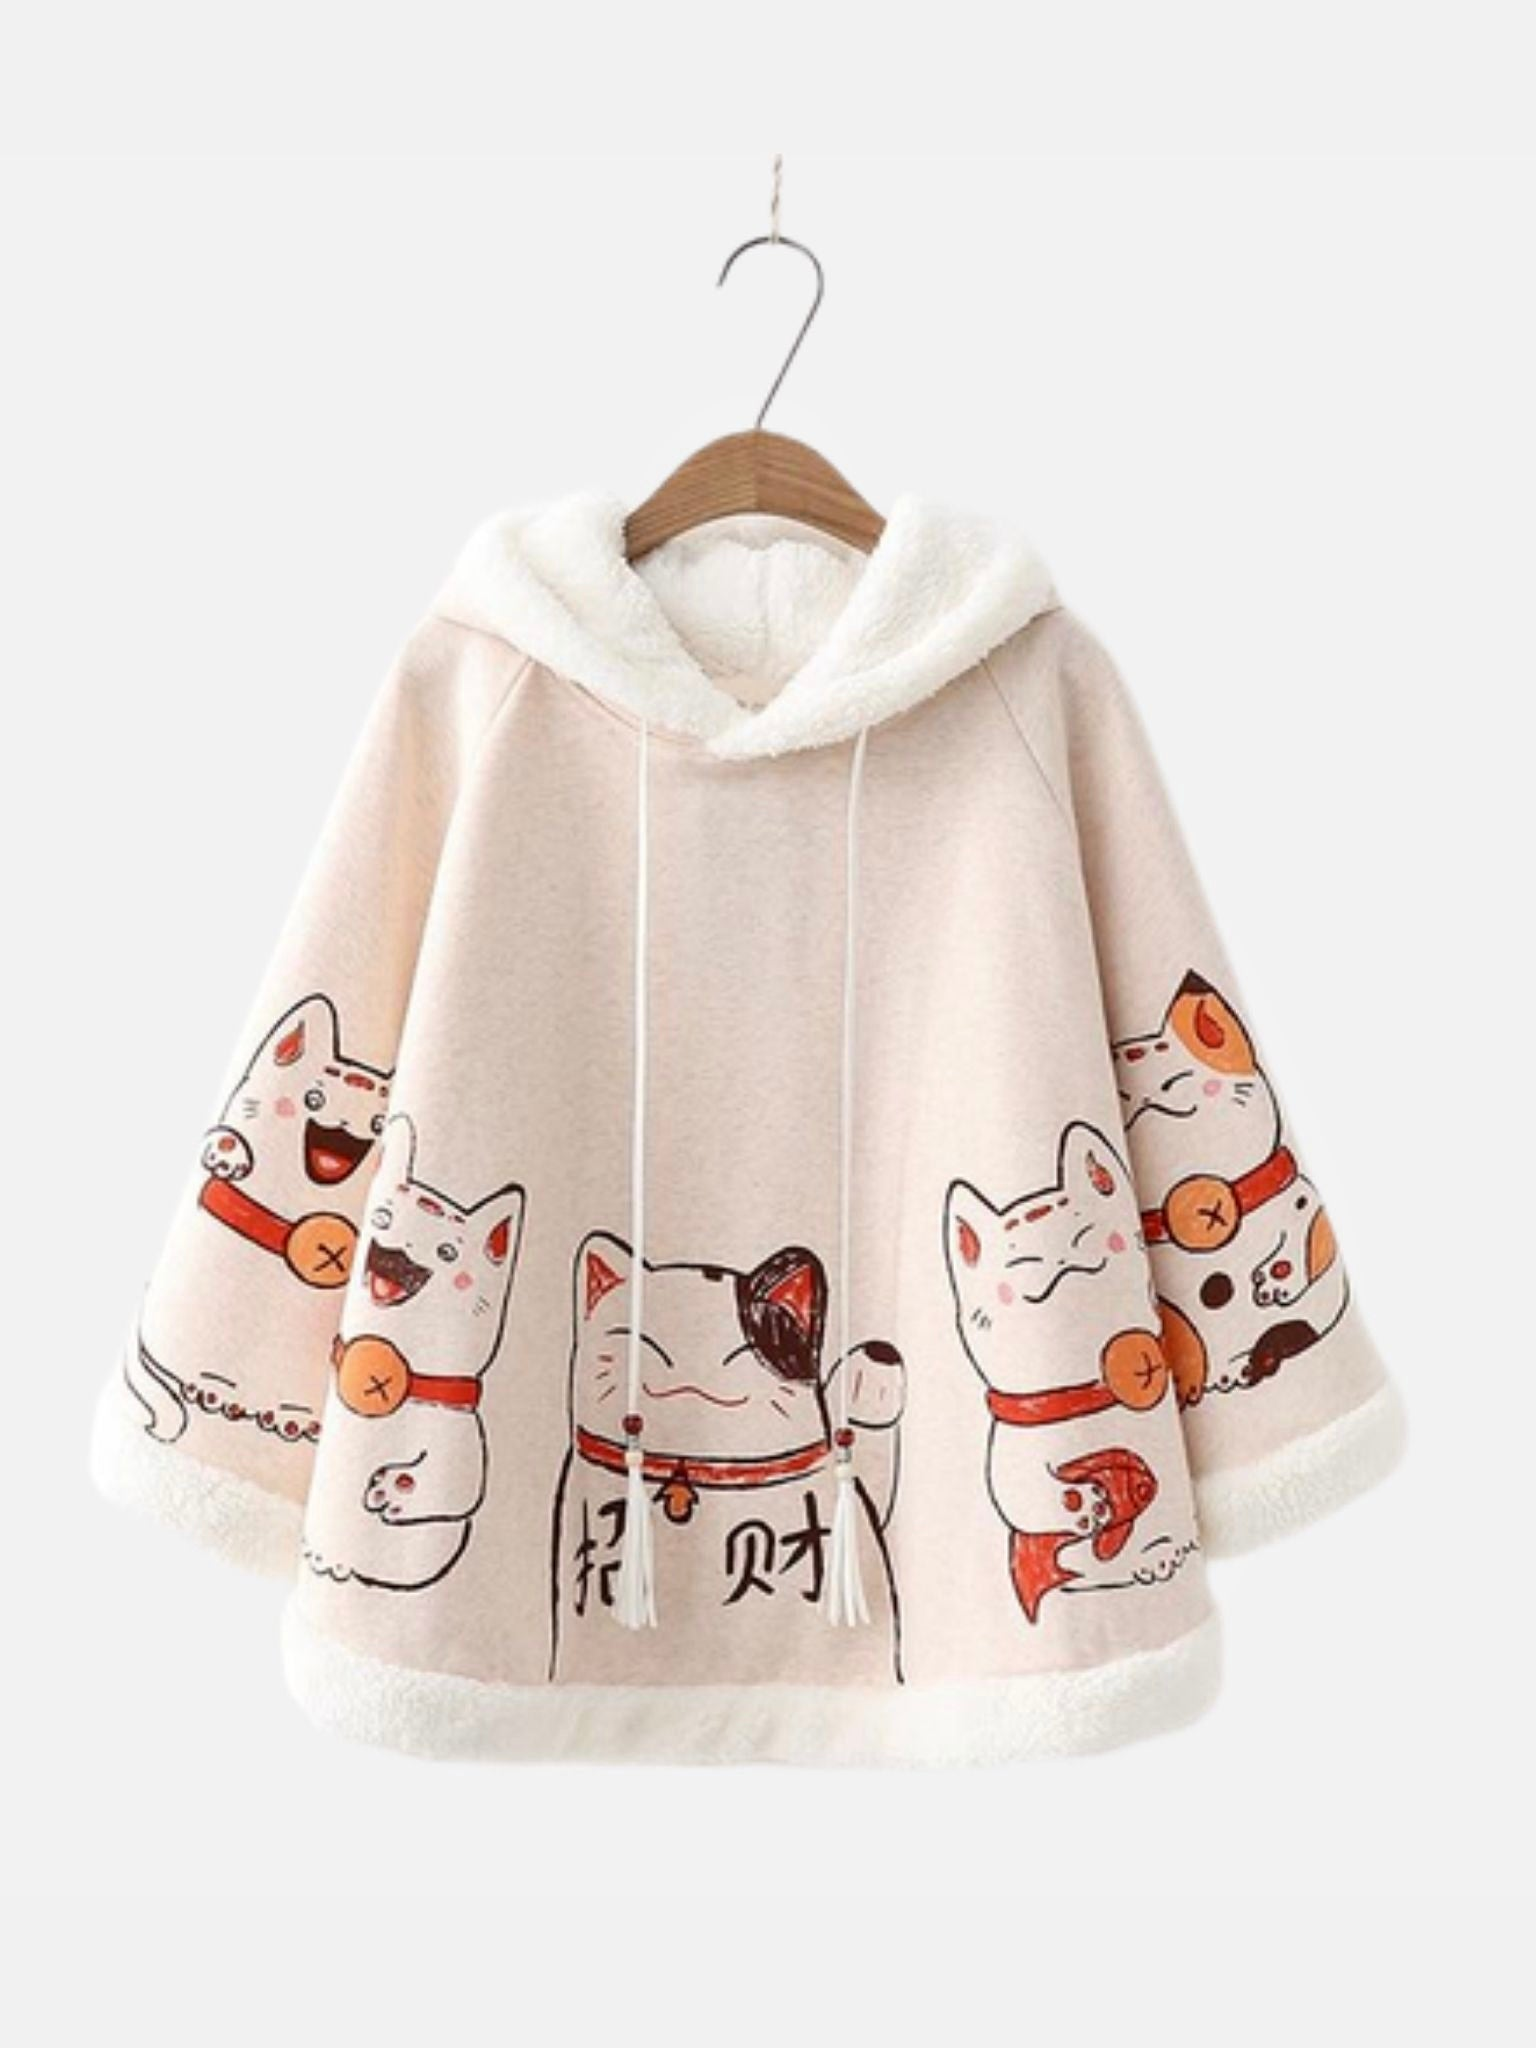 Batwing Fleece Hooded Poncho   Kawaii Ears Japanese Lucky Cat Loose Sleeve Beige Pullover Cape Top Harajuku Hooded Cloak Outwear Trend